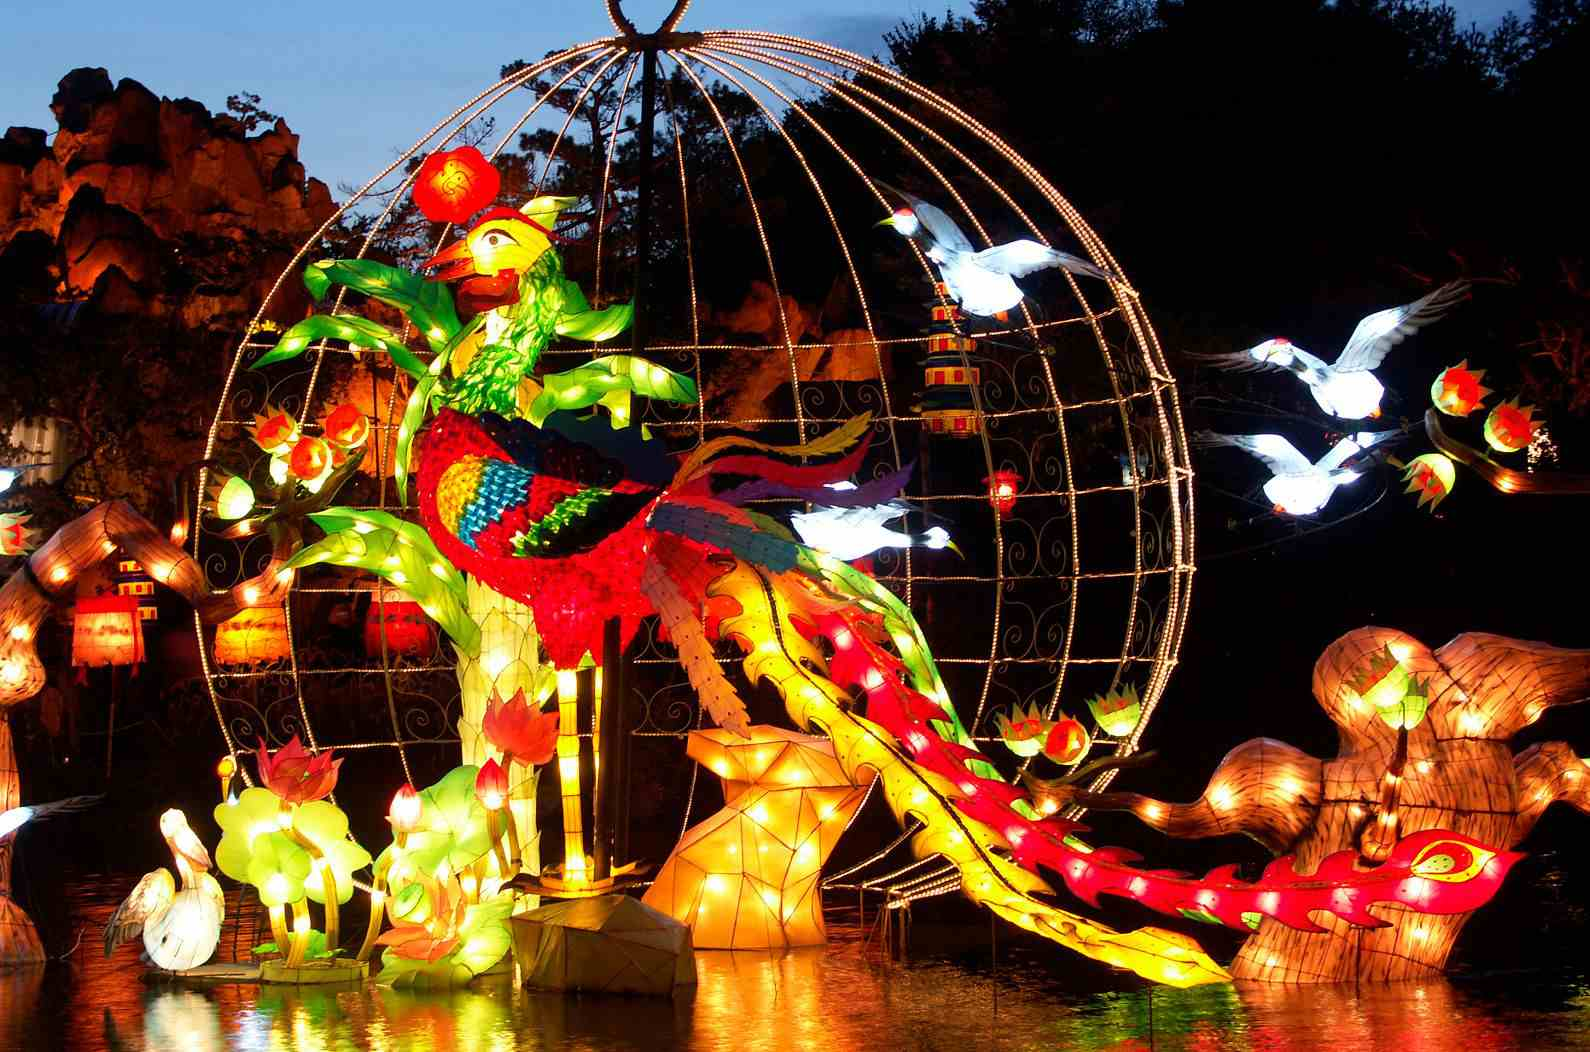 Montreal Halloween 2016 events for adults include Garden of Lights.